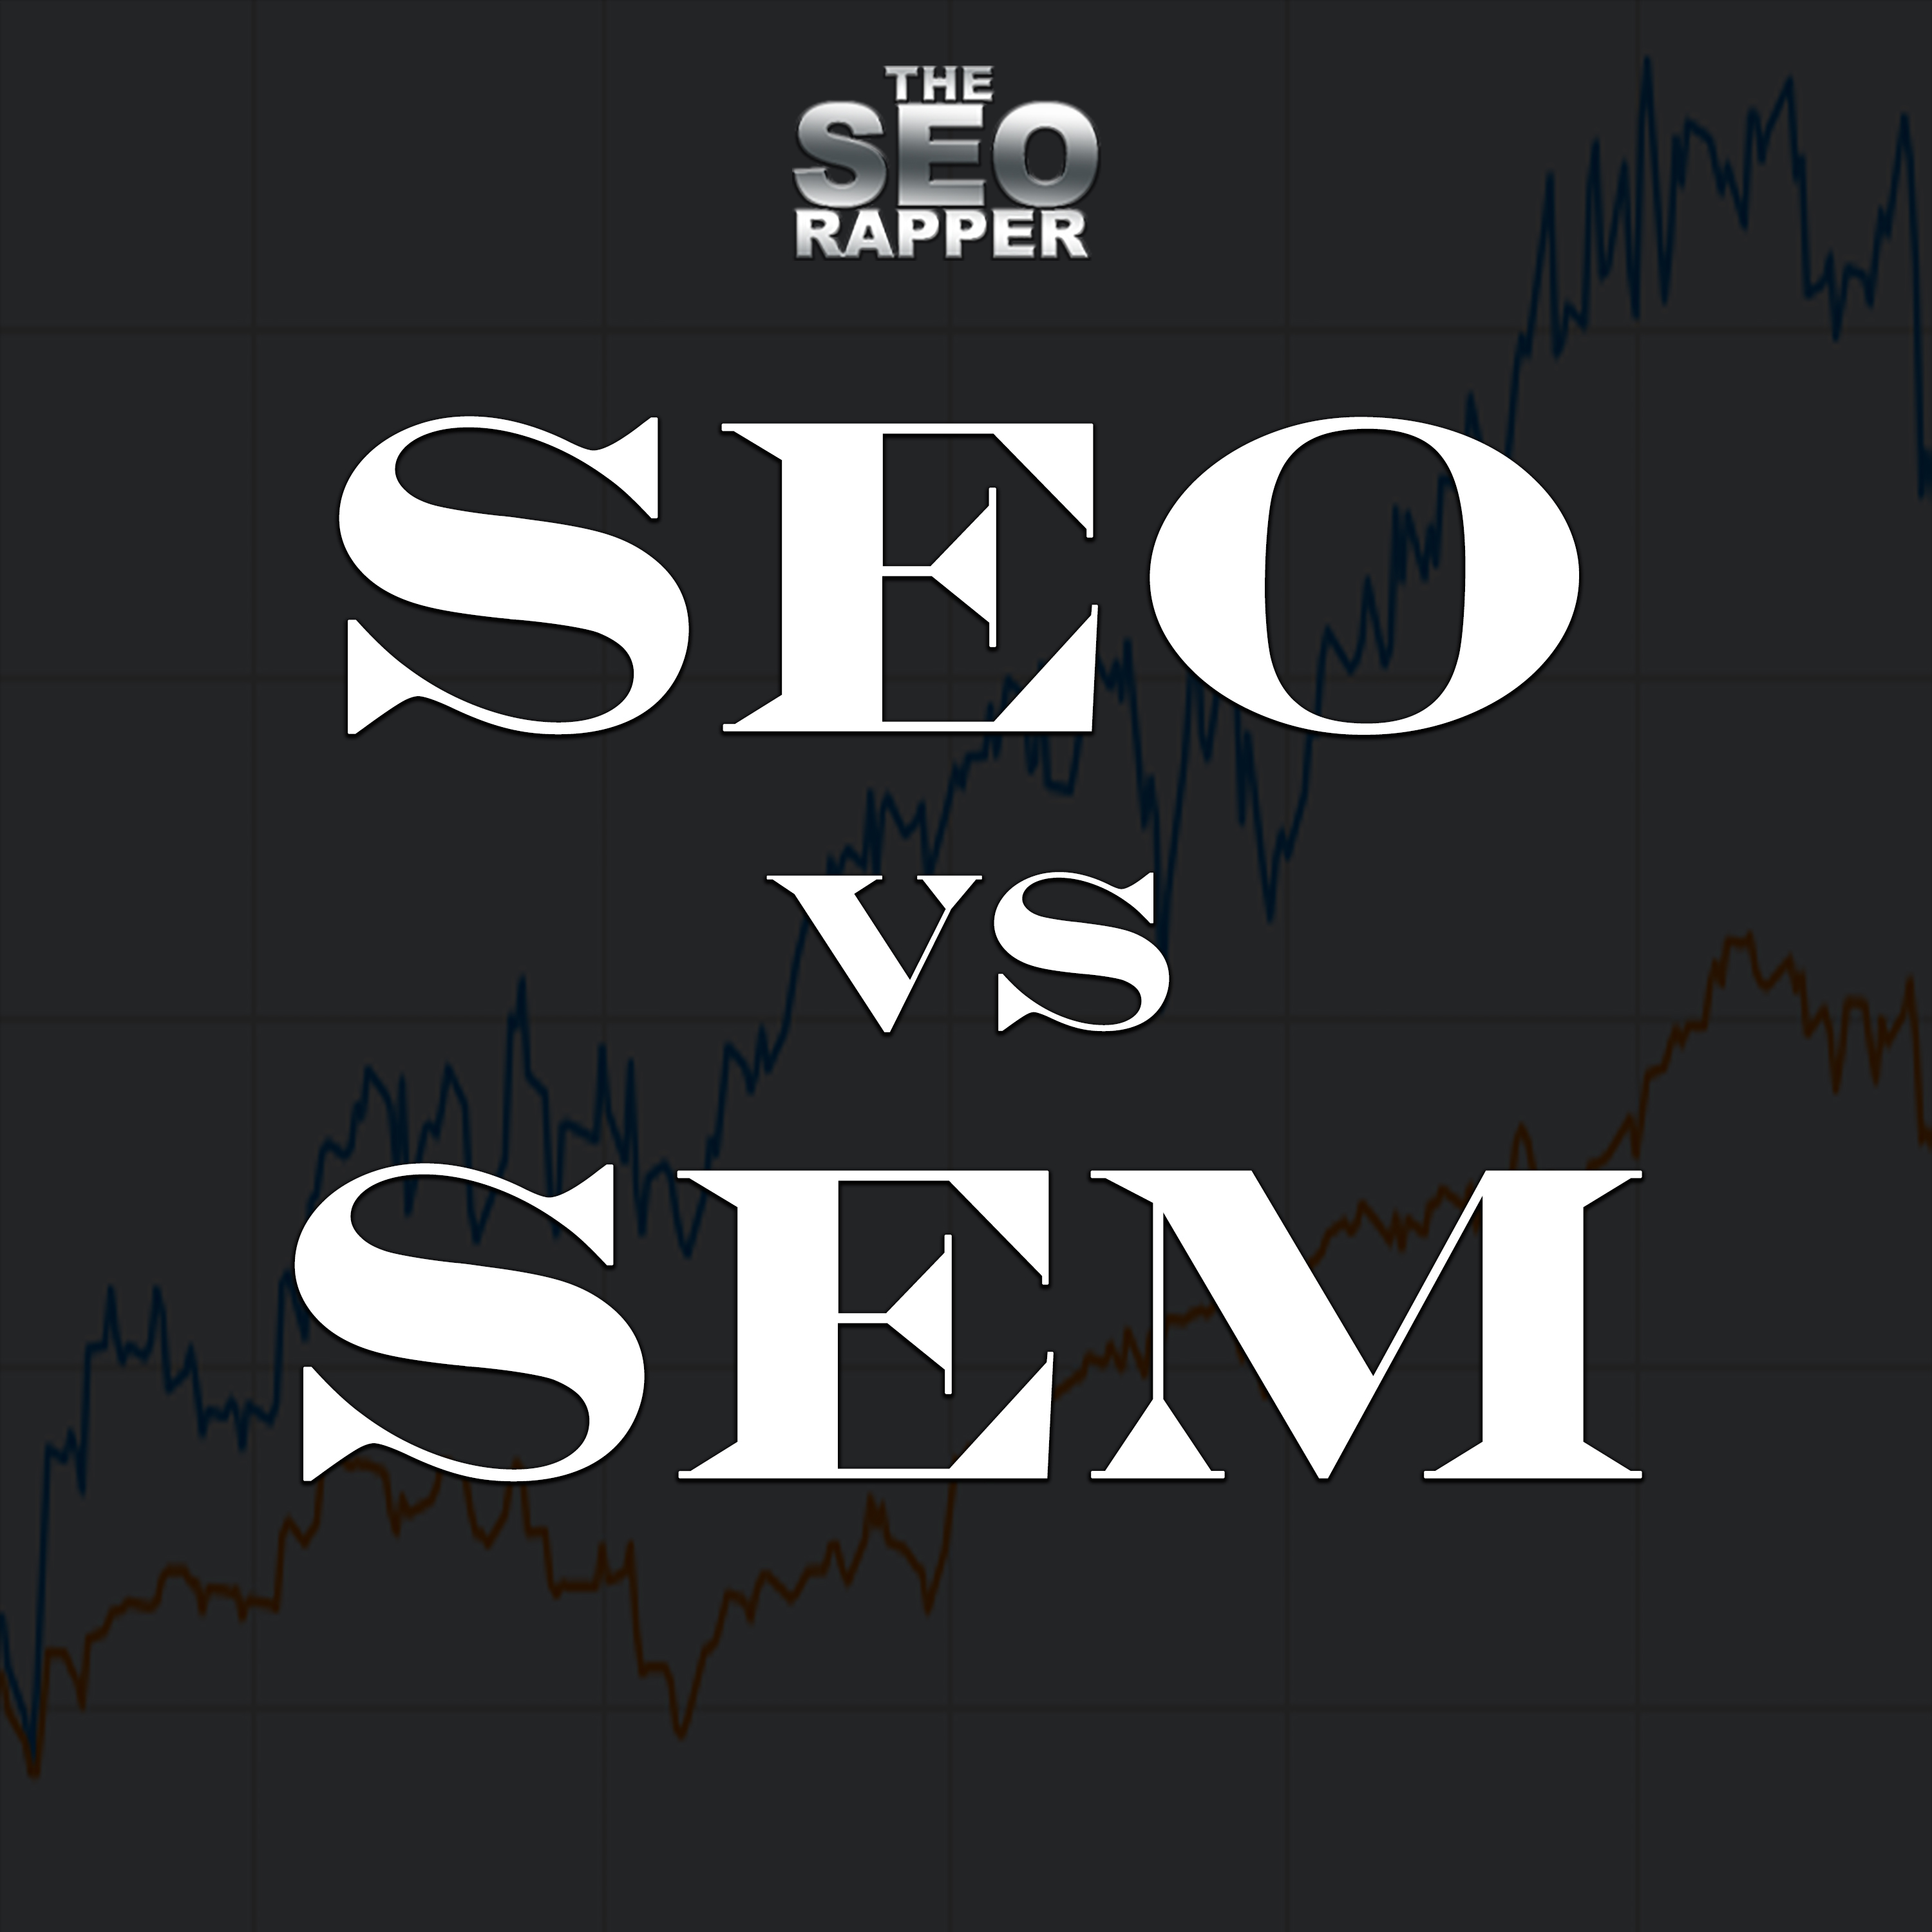 SEO vs SEM is the latest song from The SEO Rapper.